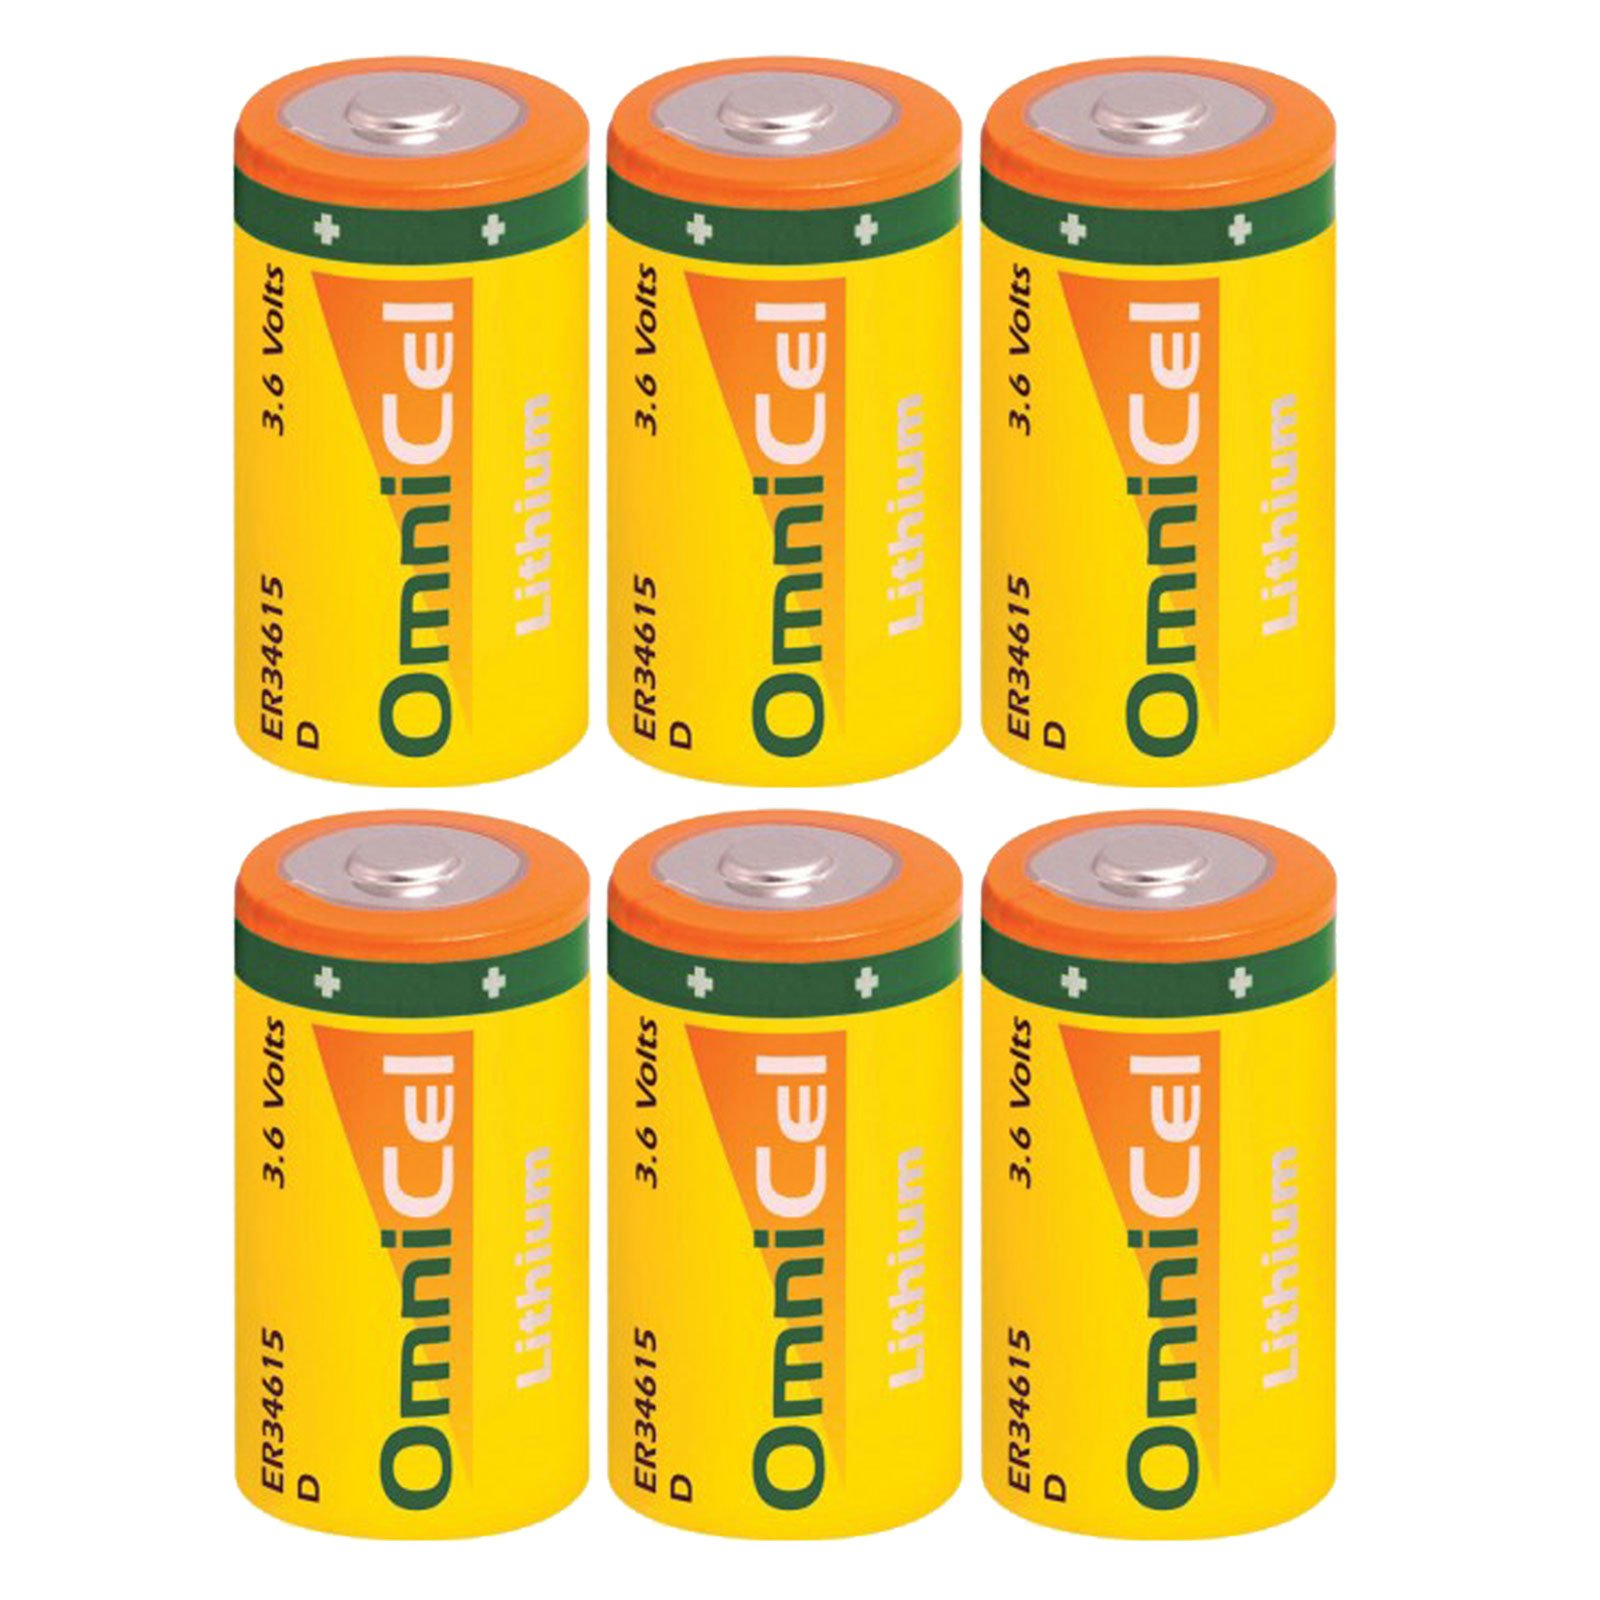 6x OmniCel ER34615 3.6 Volt 19Ah Size D Lithium Button Top Battery For Flashlights, Communications, Smart Munitions, Unattended Sensors, RFID Tracking, Asset Tracking, Theft Prevention by Exell Battery